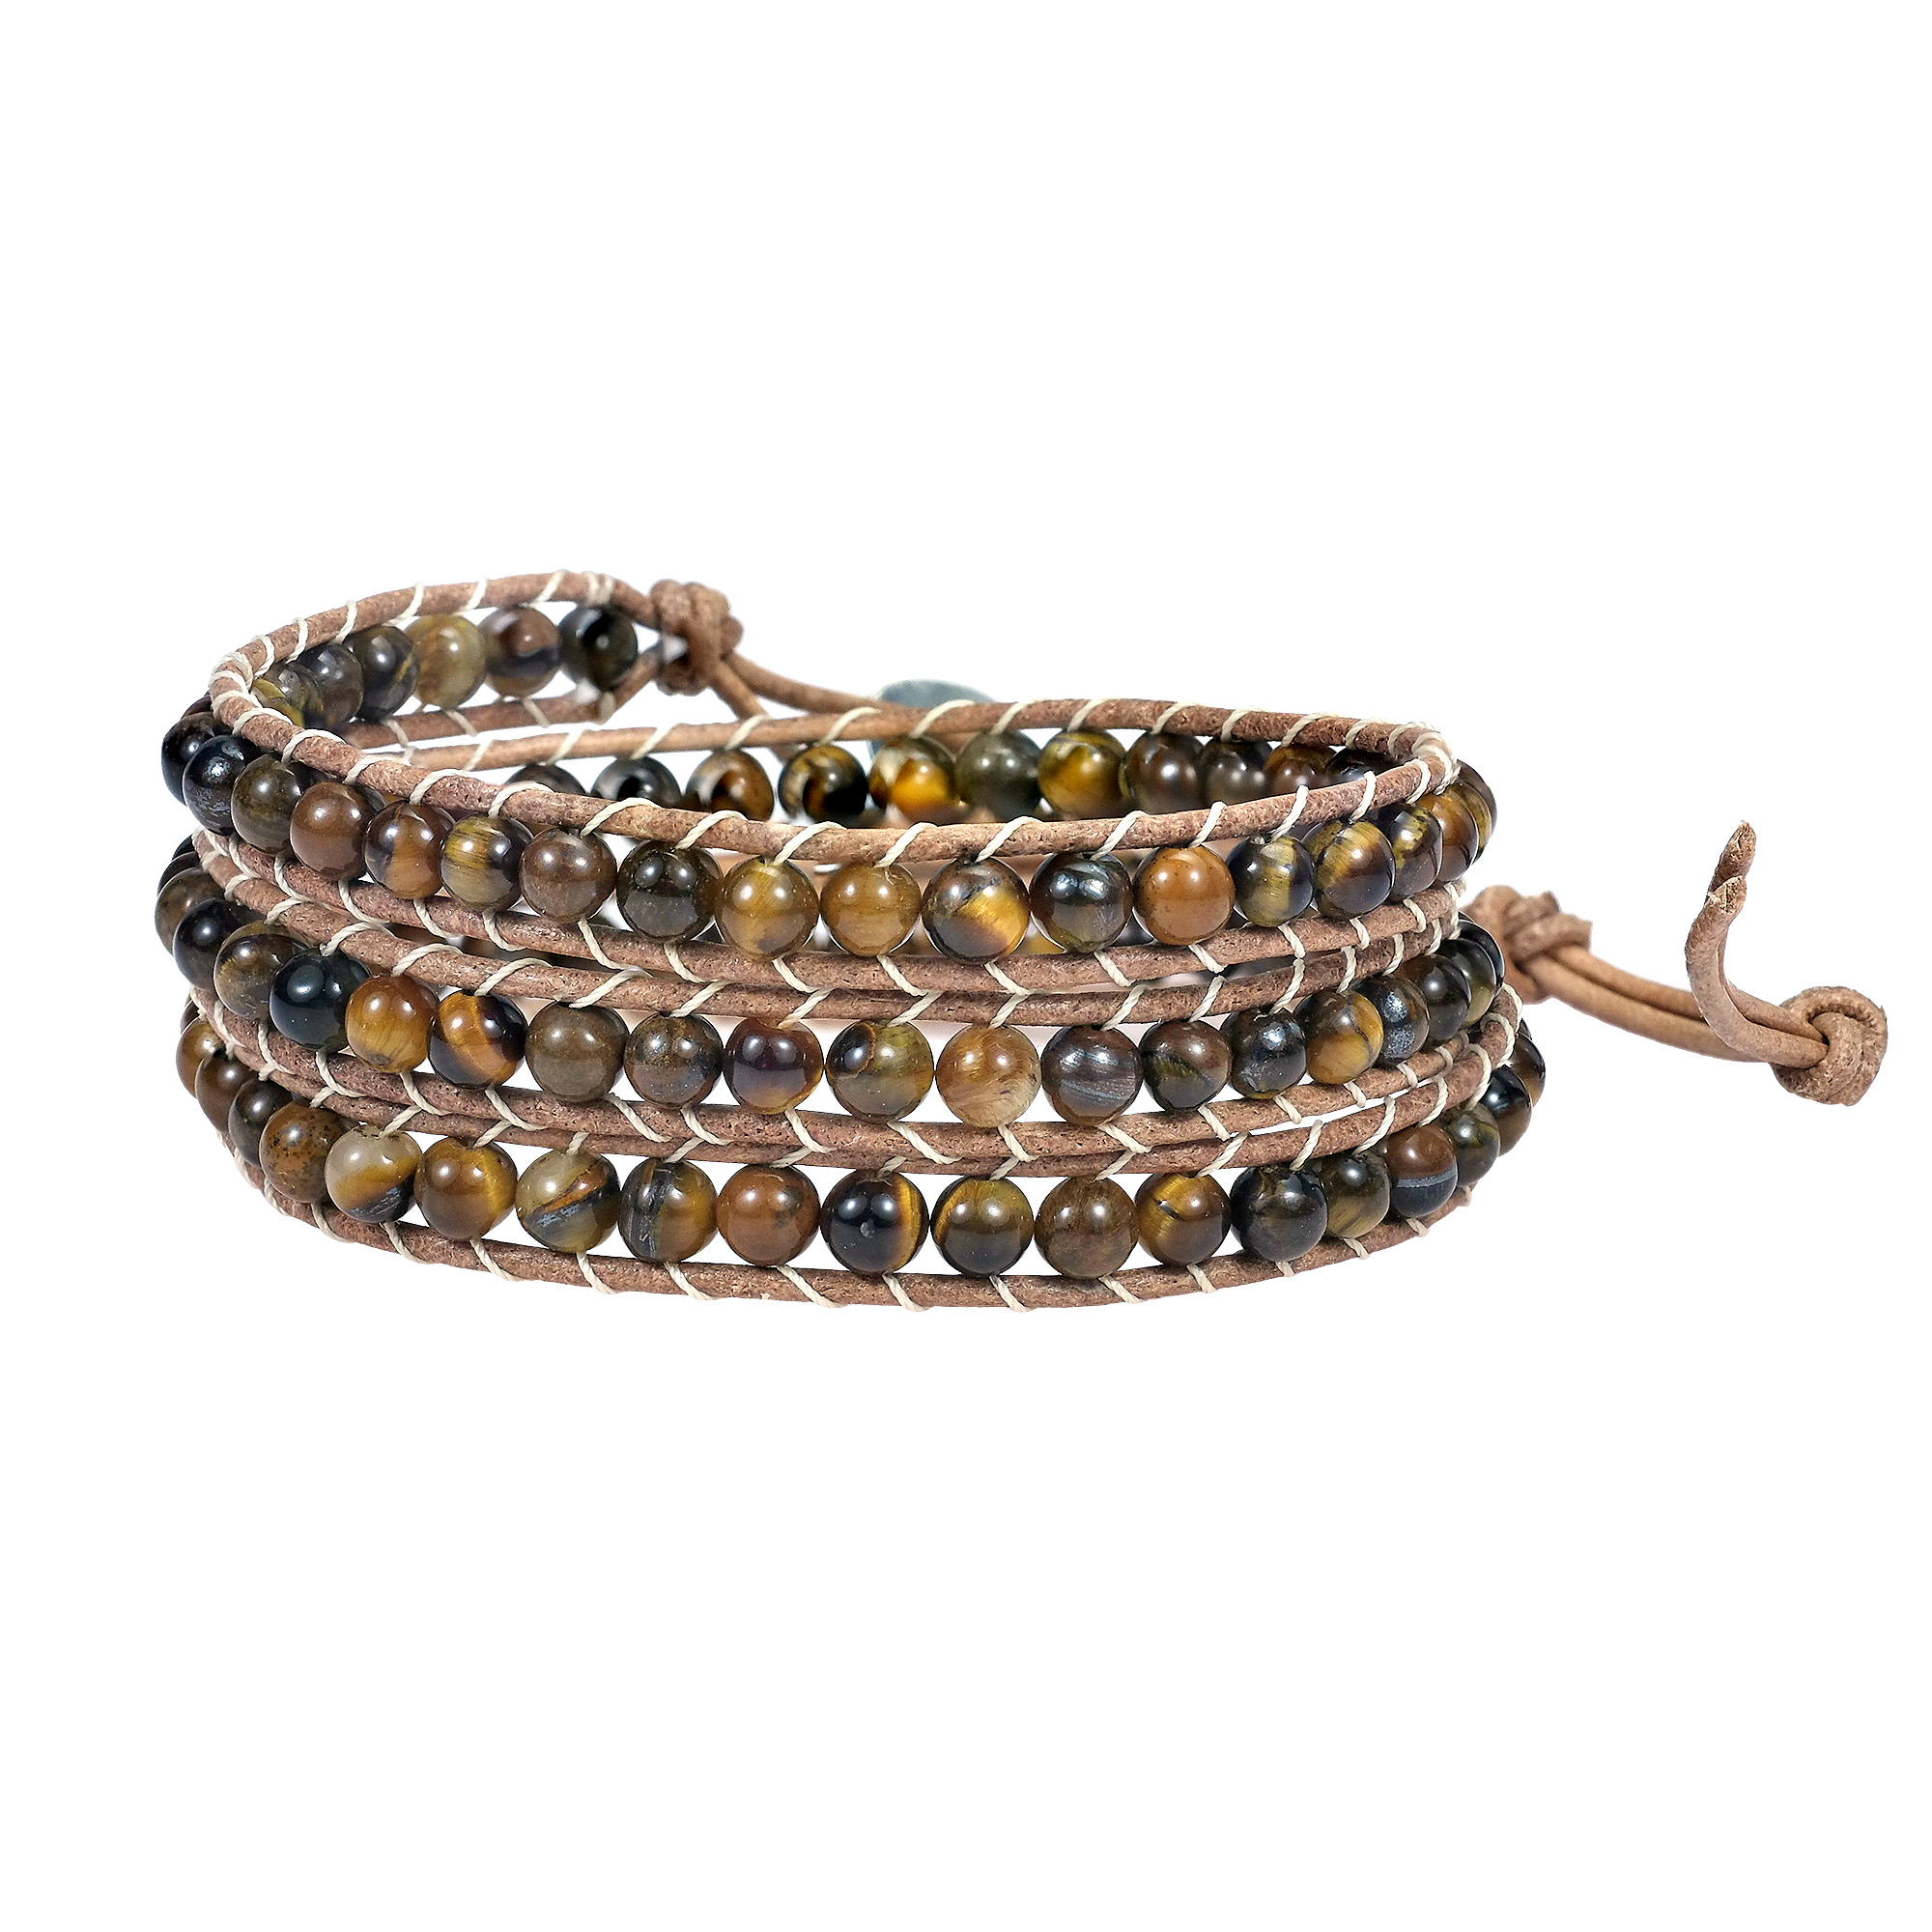 b amazon bracelet online colored in fashion bracelets at girls shining buy best diva stone charm india prices